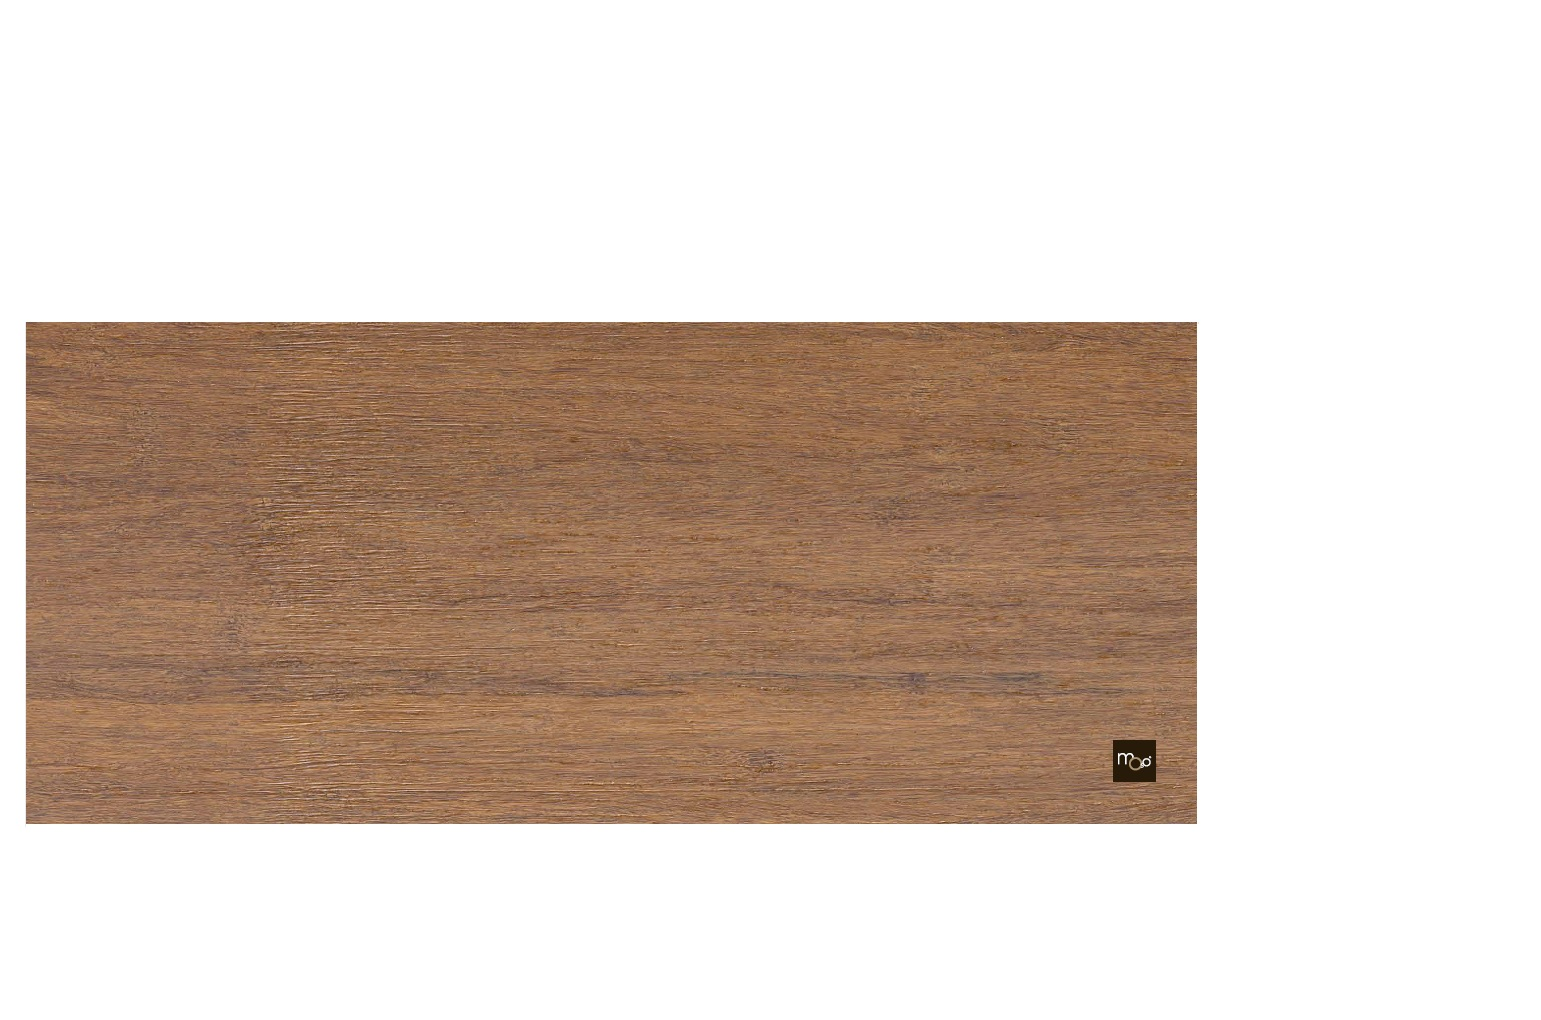 Moso Bamboo excellence caramel DT BKL Gold 2400x180x15mm